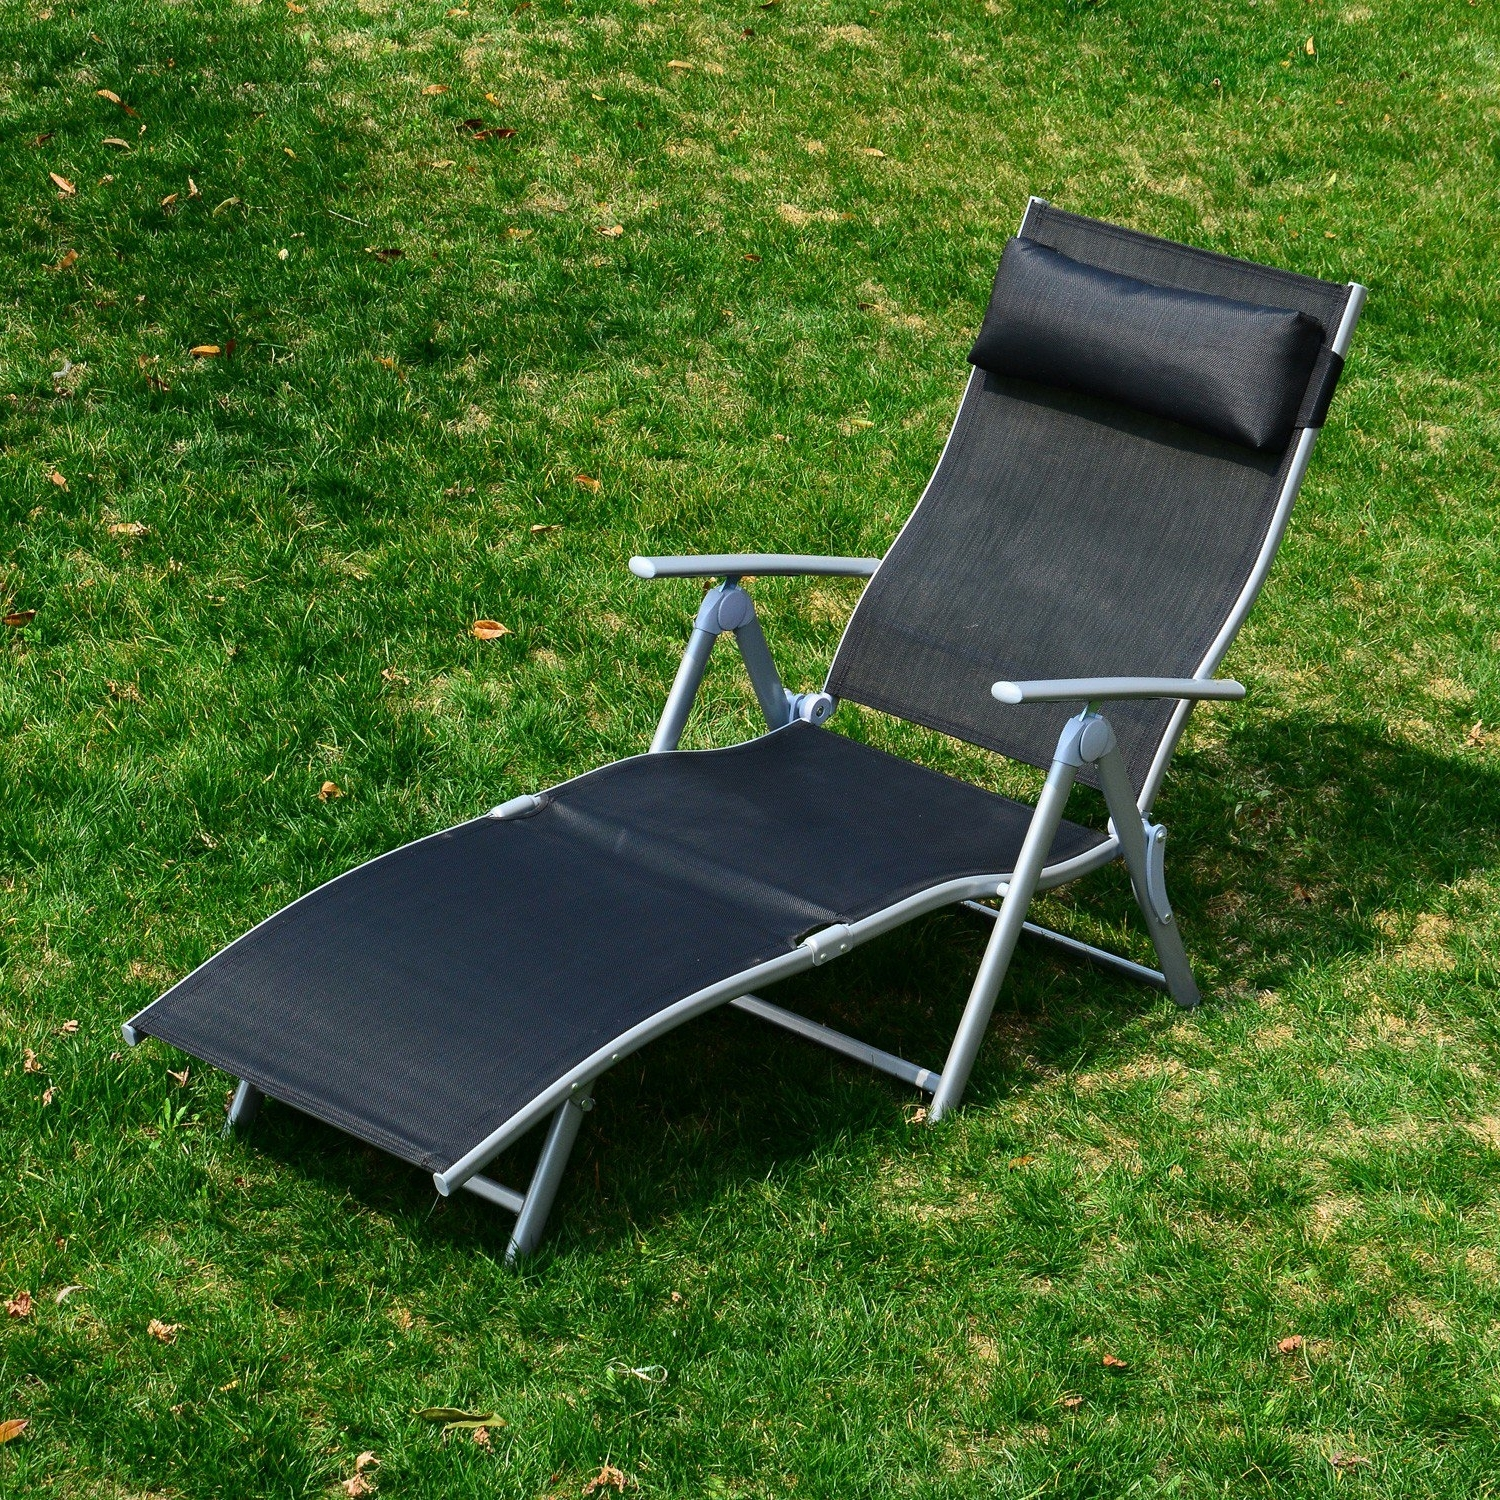 Widely Used Heavy Duty Outdoor Chaise Lounge Chairs Inside Outsunny Heavy Duty Adjustable Folding Reclining Chair Seat (View 7 of 15)